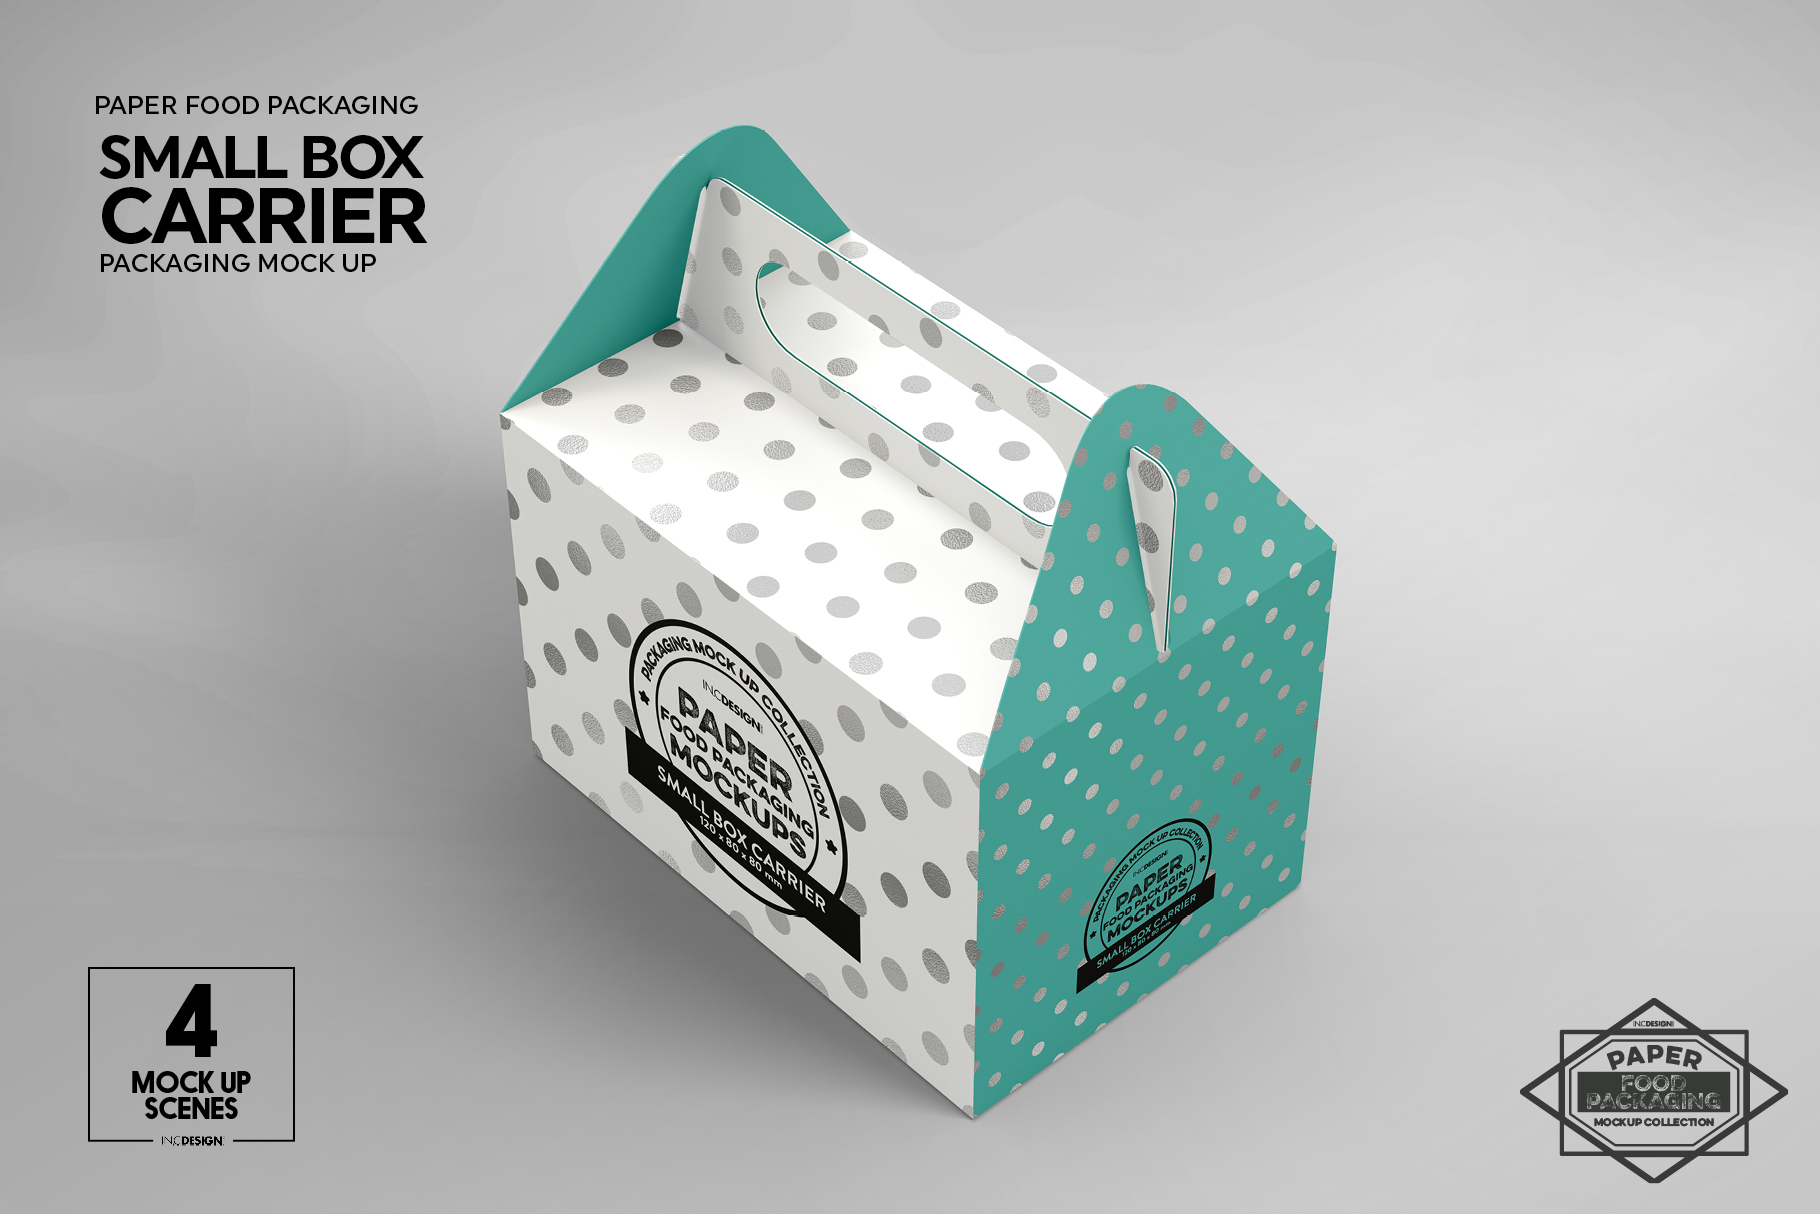 Small Cake Box Carrier Packaging Mockup example image 3